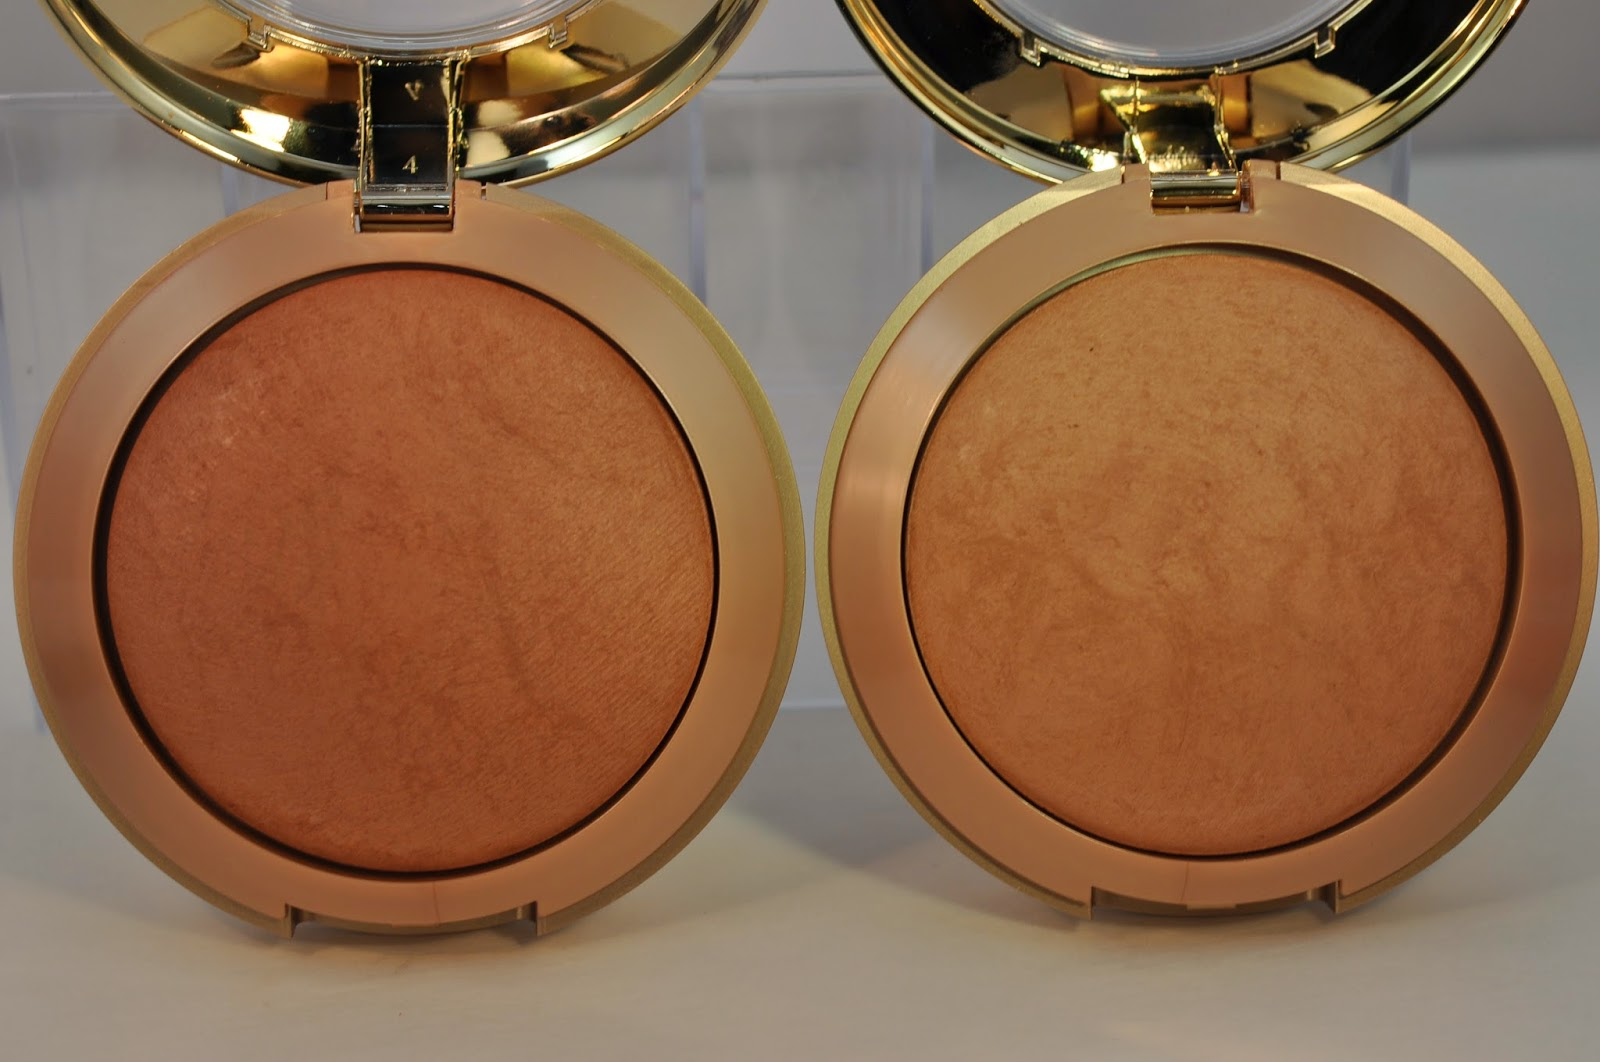 Milani Baked Bronzers in 07 Sienna and 08 Sunset